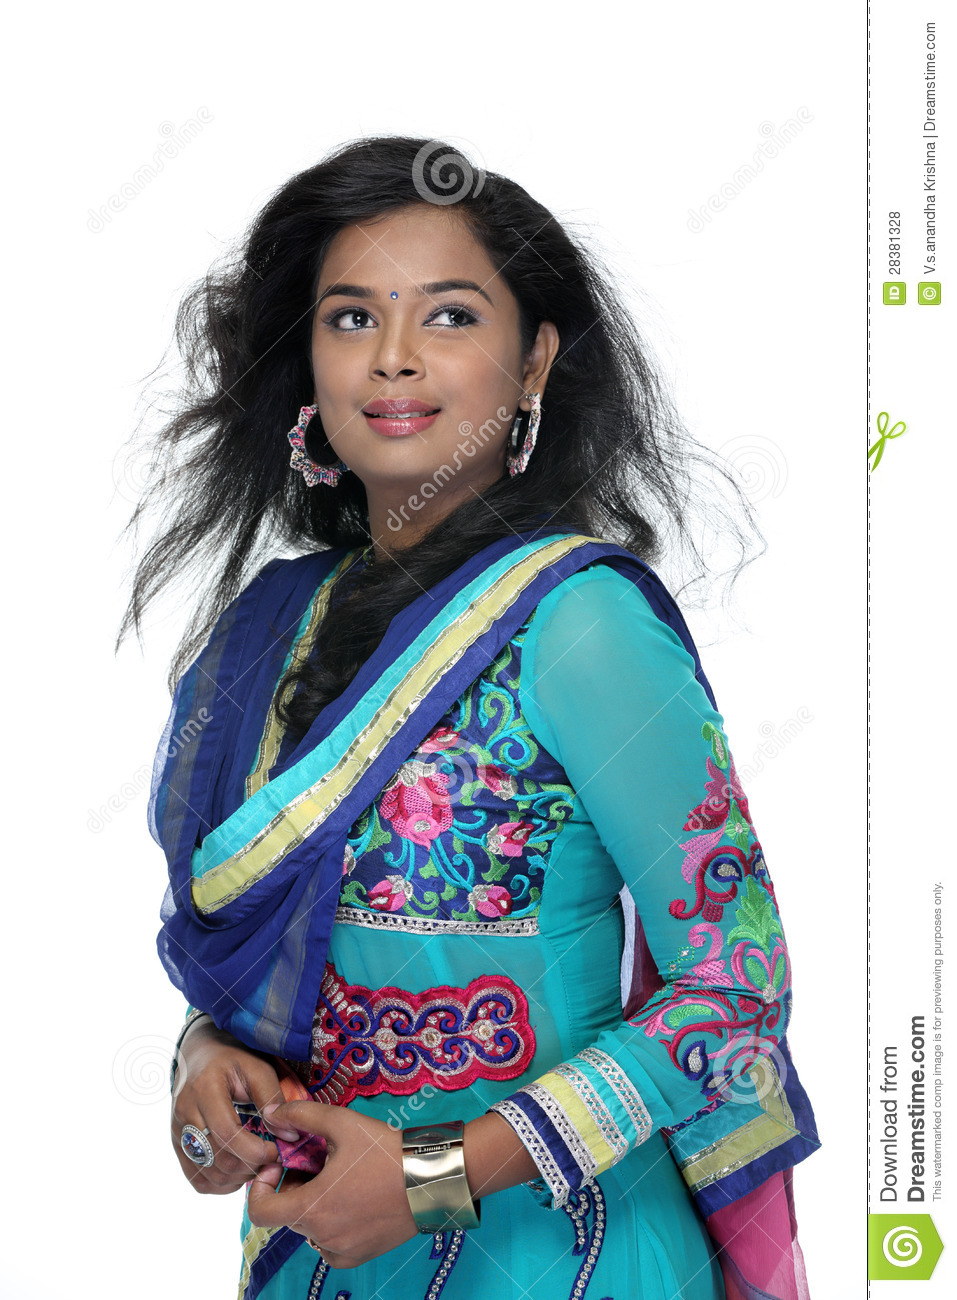 hindu single women in petty Home / family / walking the tightrope: good indian girls, race, and bad sexuality walking the tightrope: good indian all content ©2016 the feminist wire all.